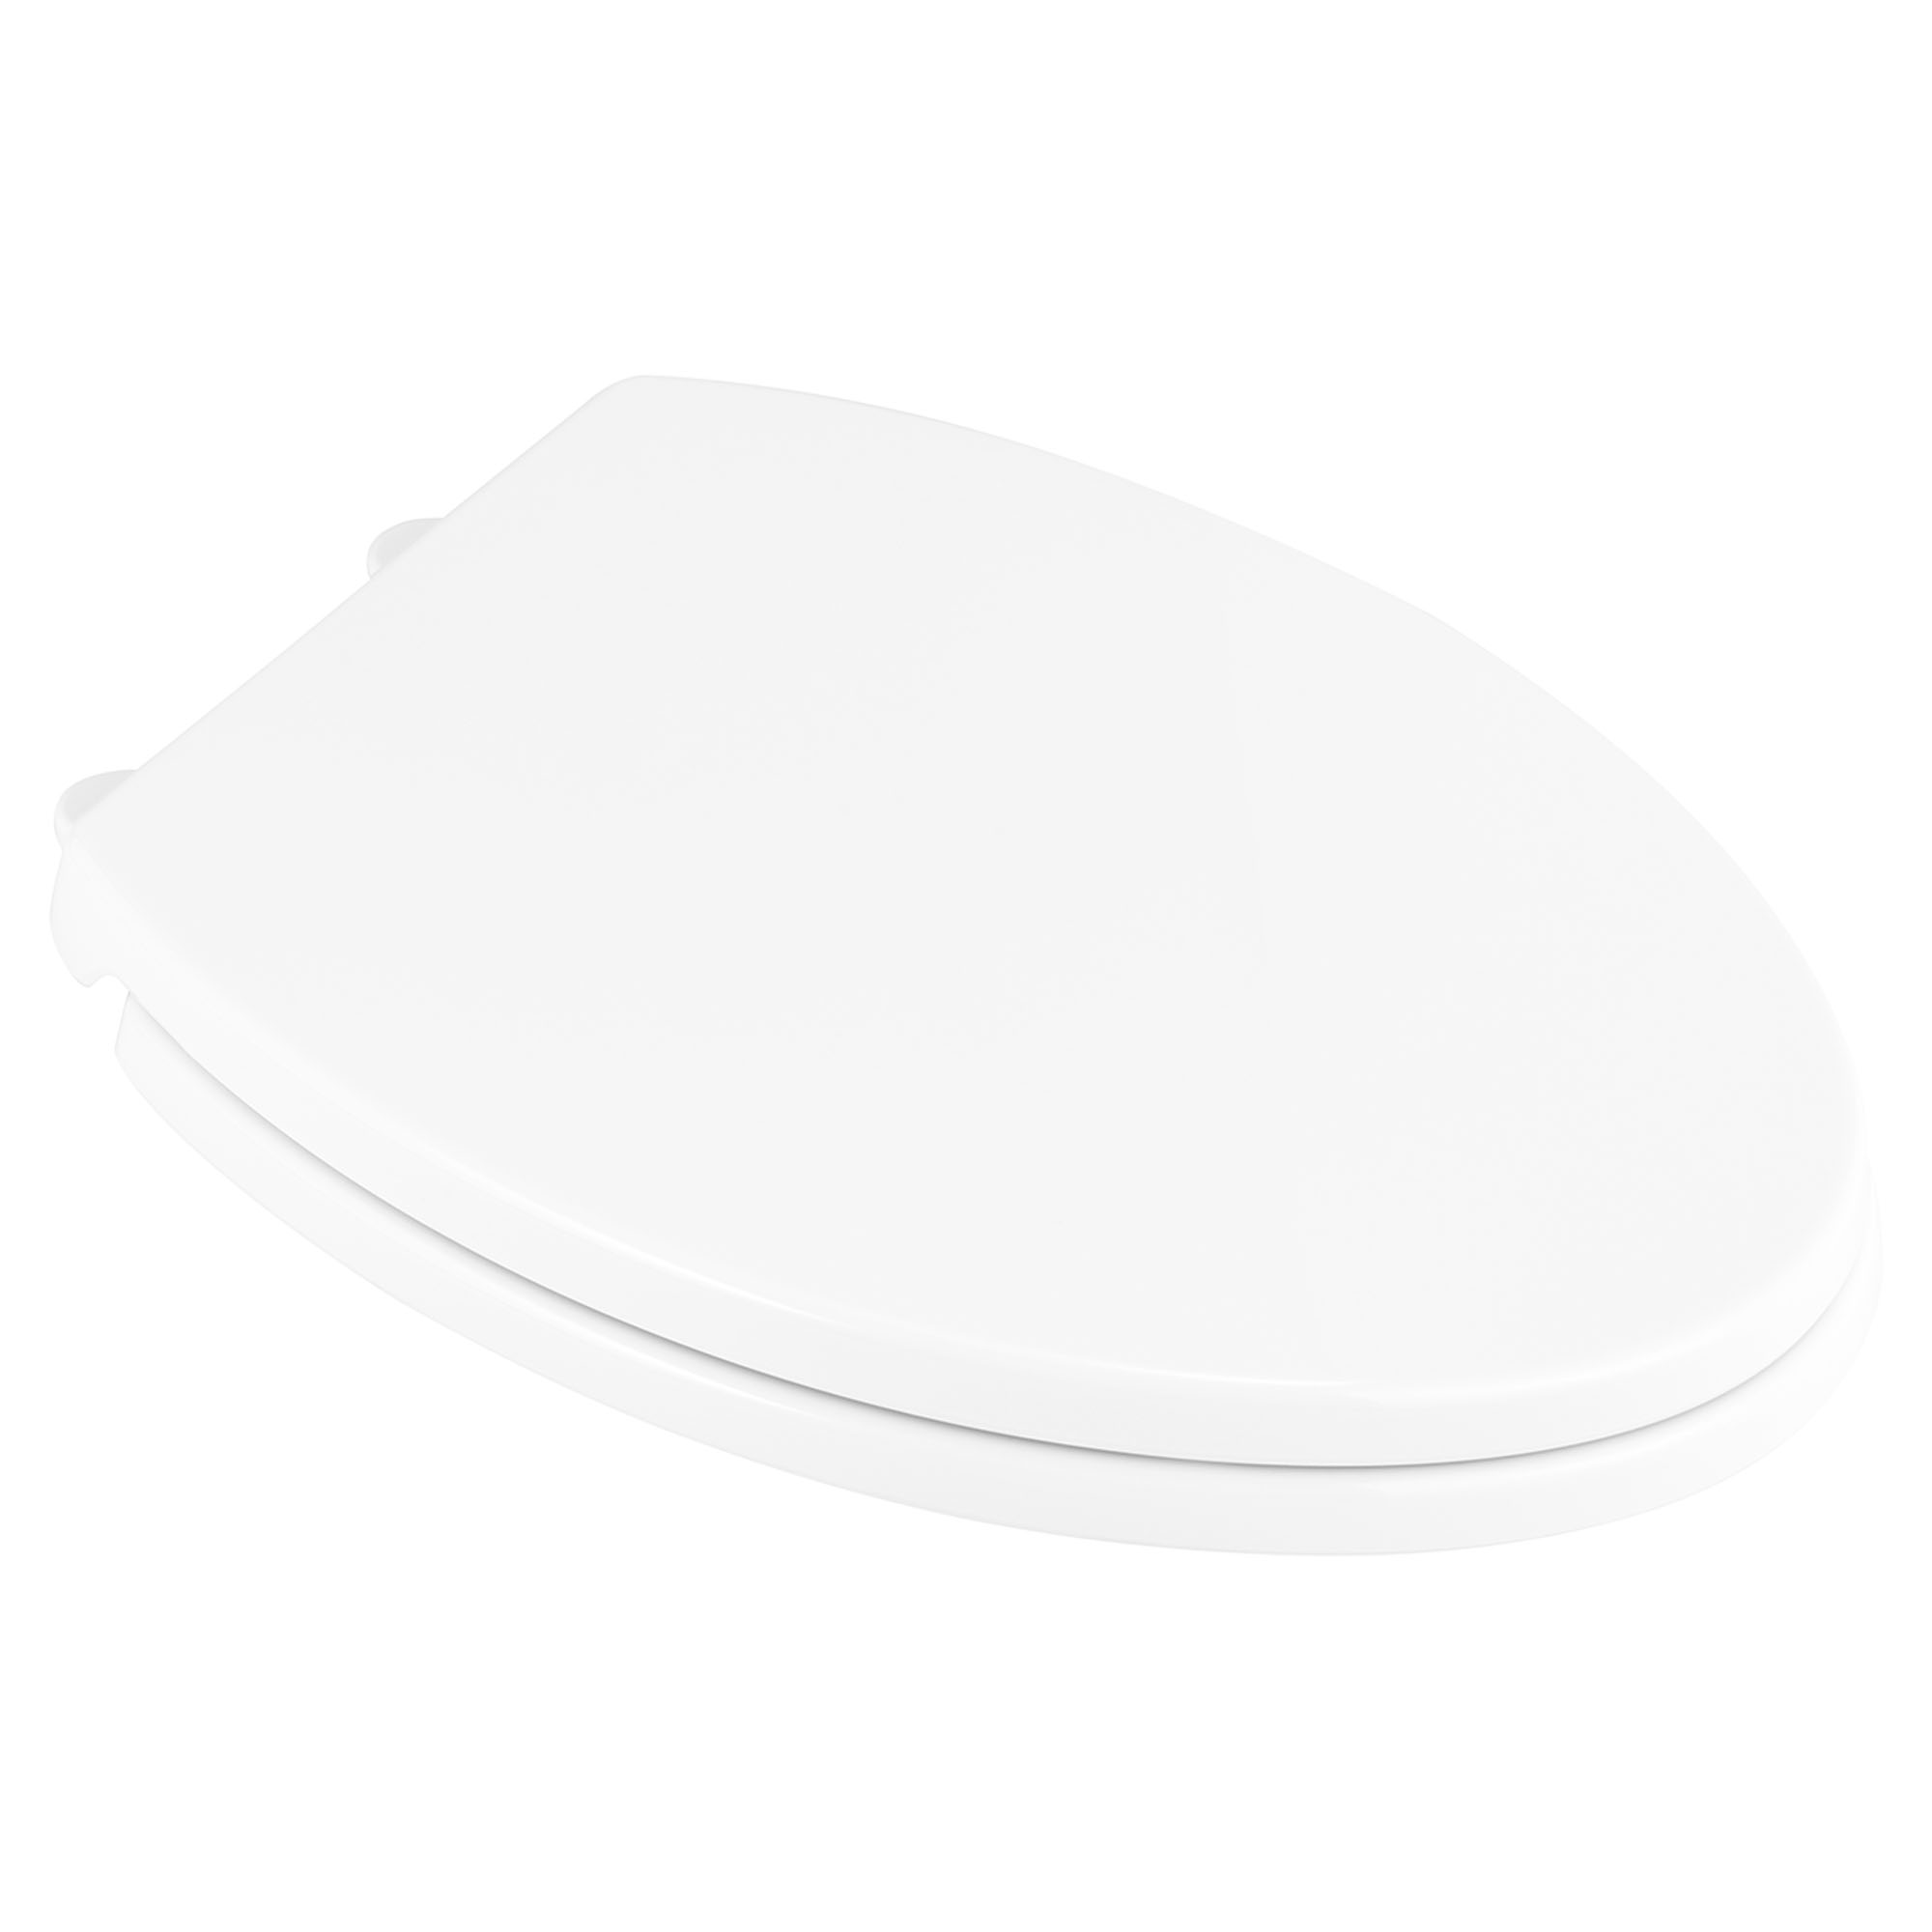 Transitional Elongated Luxury Toilet Seat